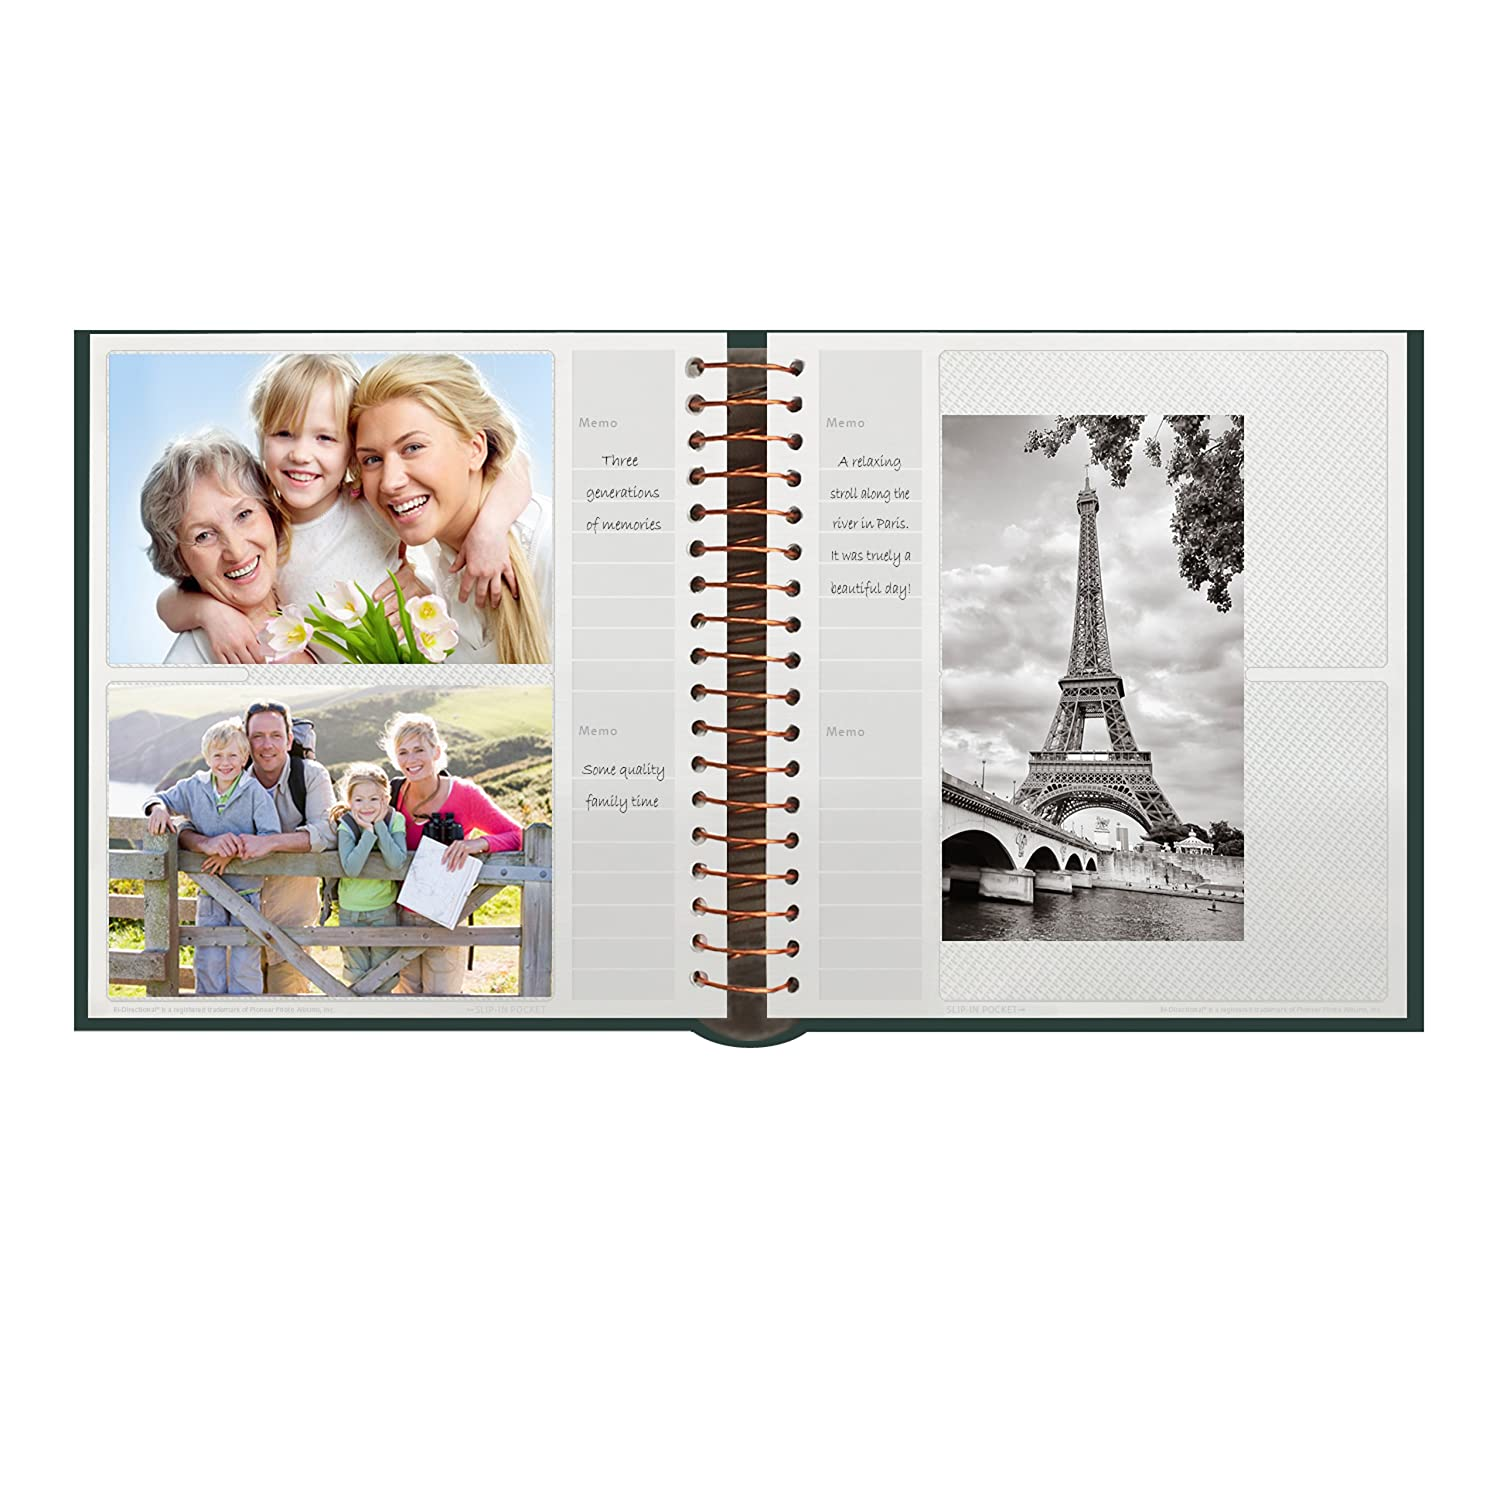 Bay Blue Leatherette with Gold Accents Cover Pioneer Photo Albums 200-Pocket Coil Bound Photo Album for 4 by 6-Inch Prints